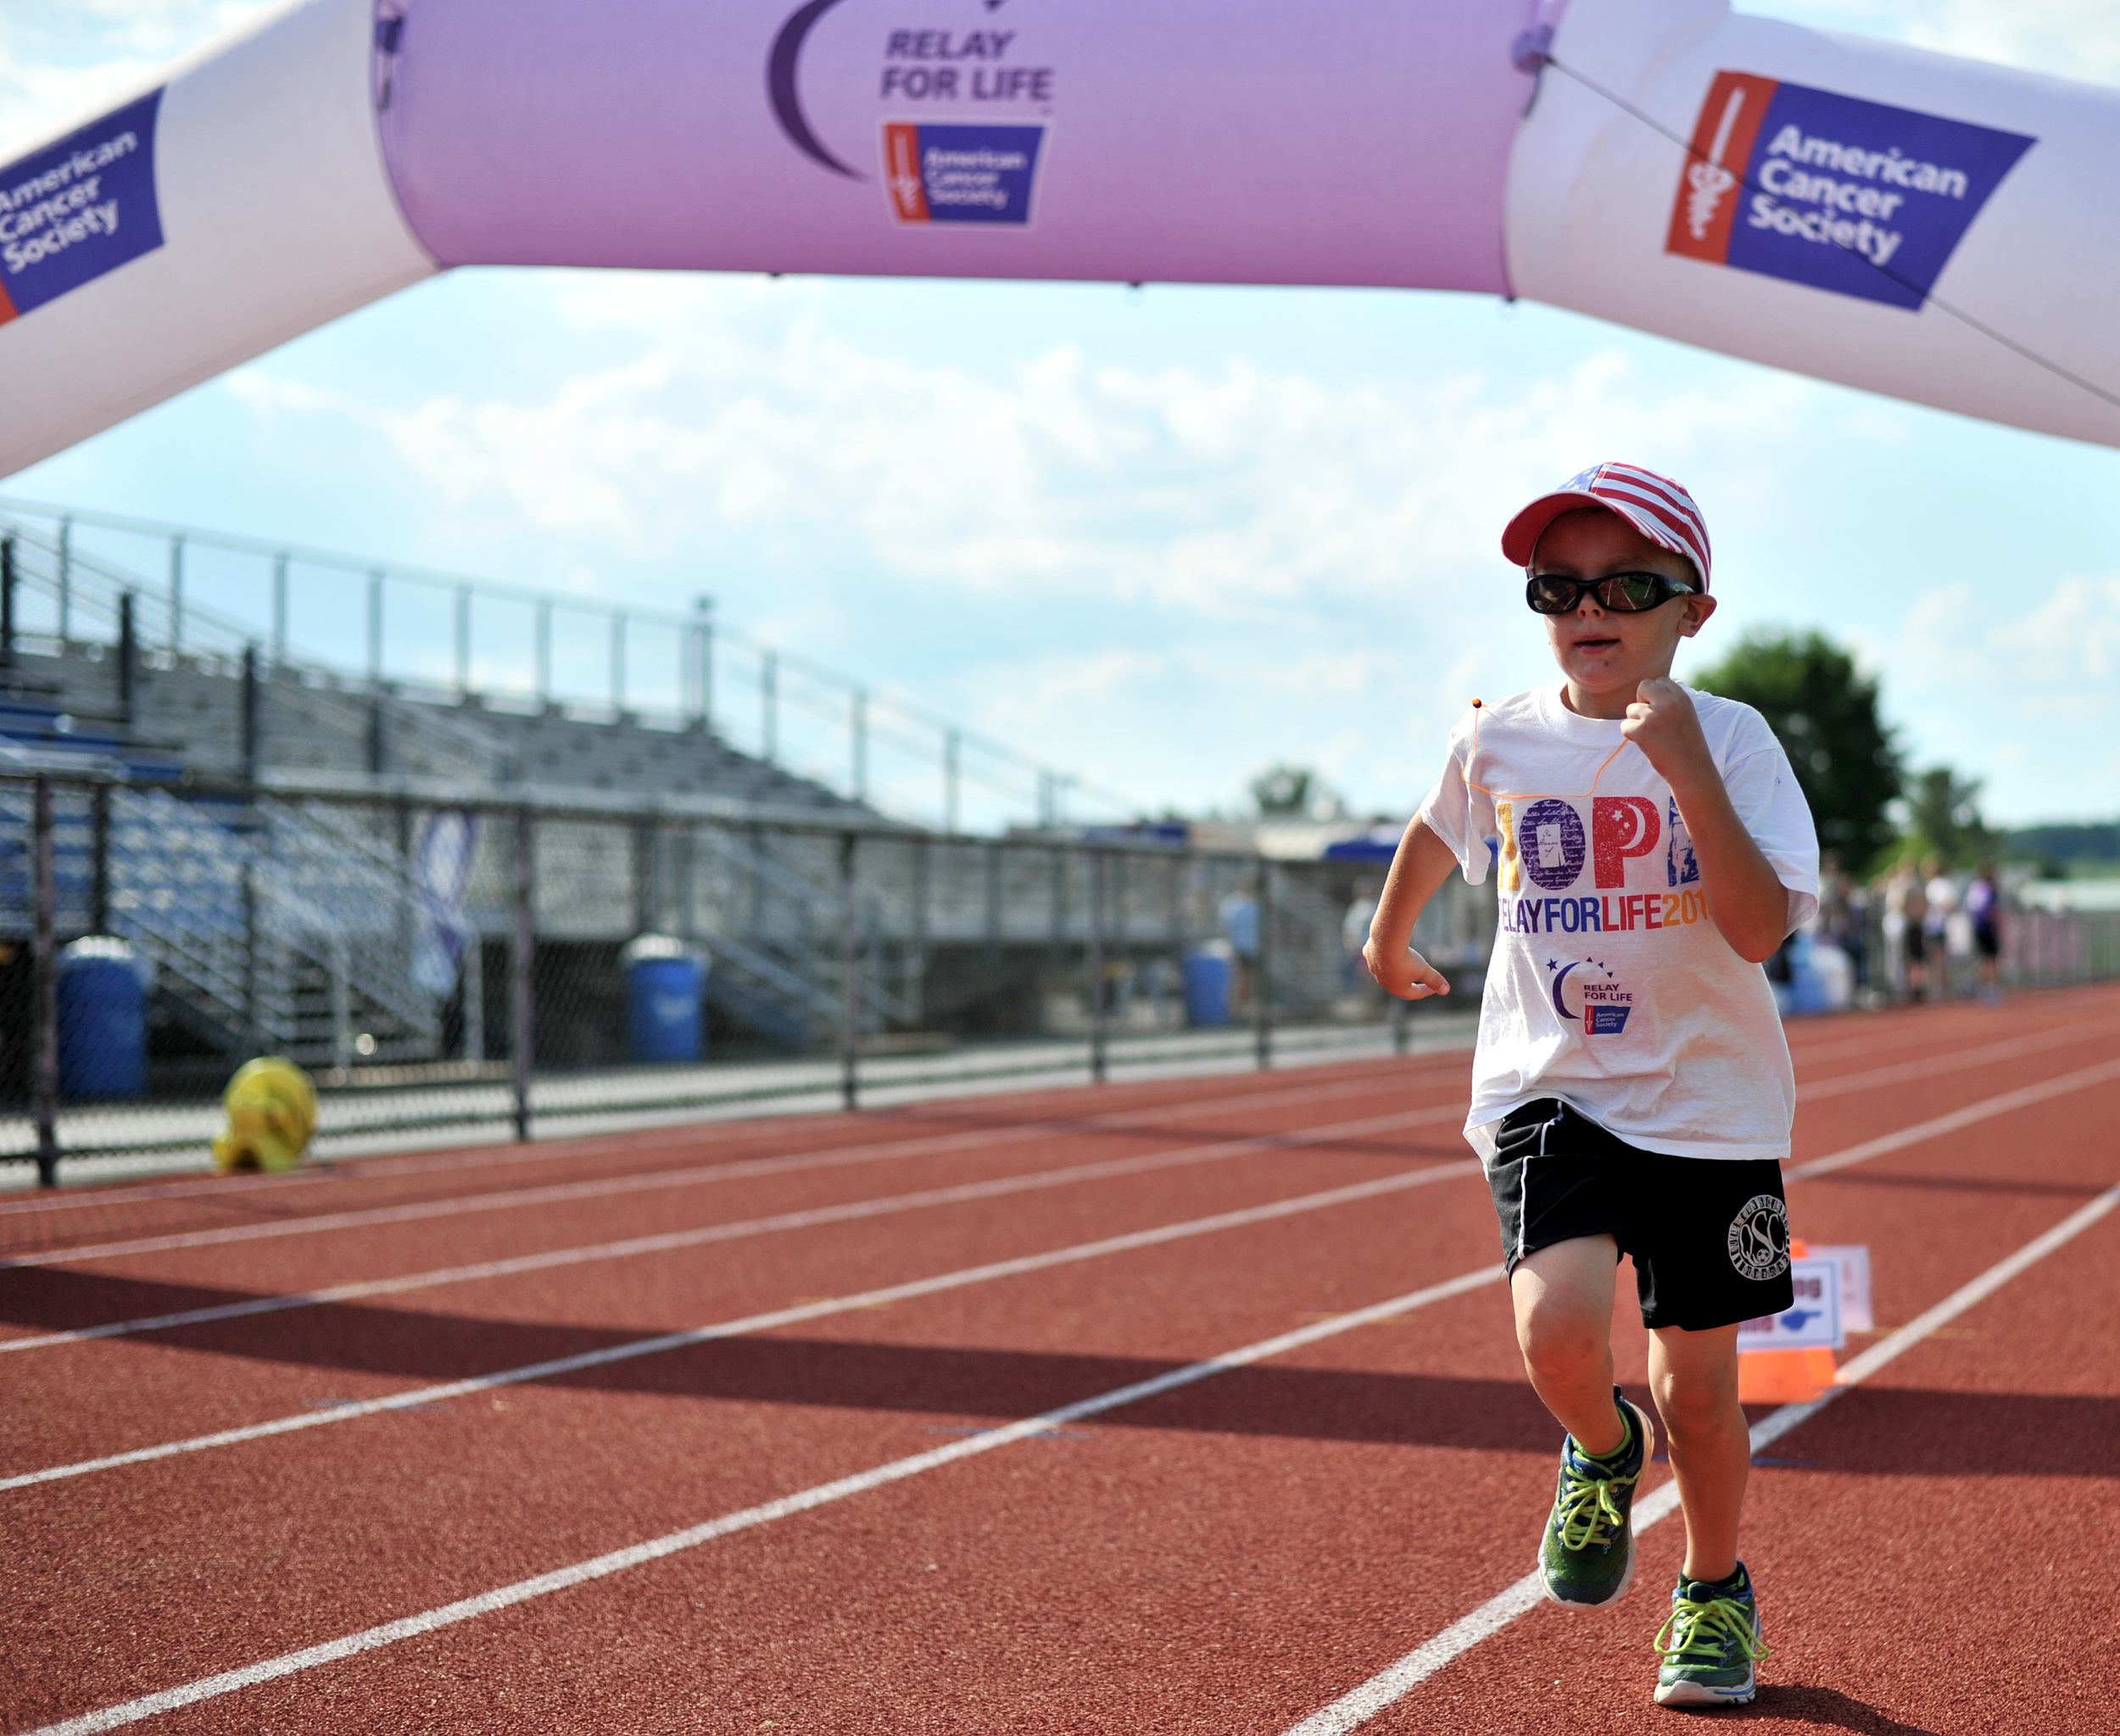 Daniel Williams, 6, of Trumbauersville participates in the 2016 Relay for Life held in Denver, PA, on June 16, 2016. (Sarah Stier: Reading Eagle)